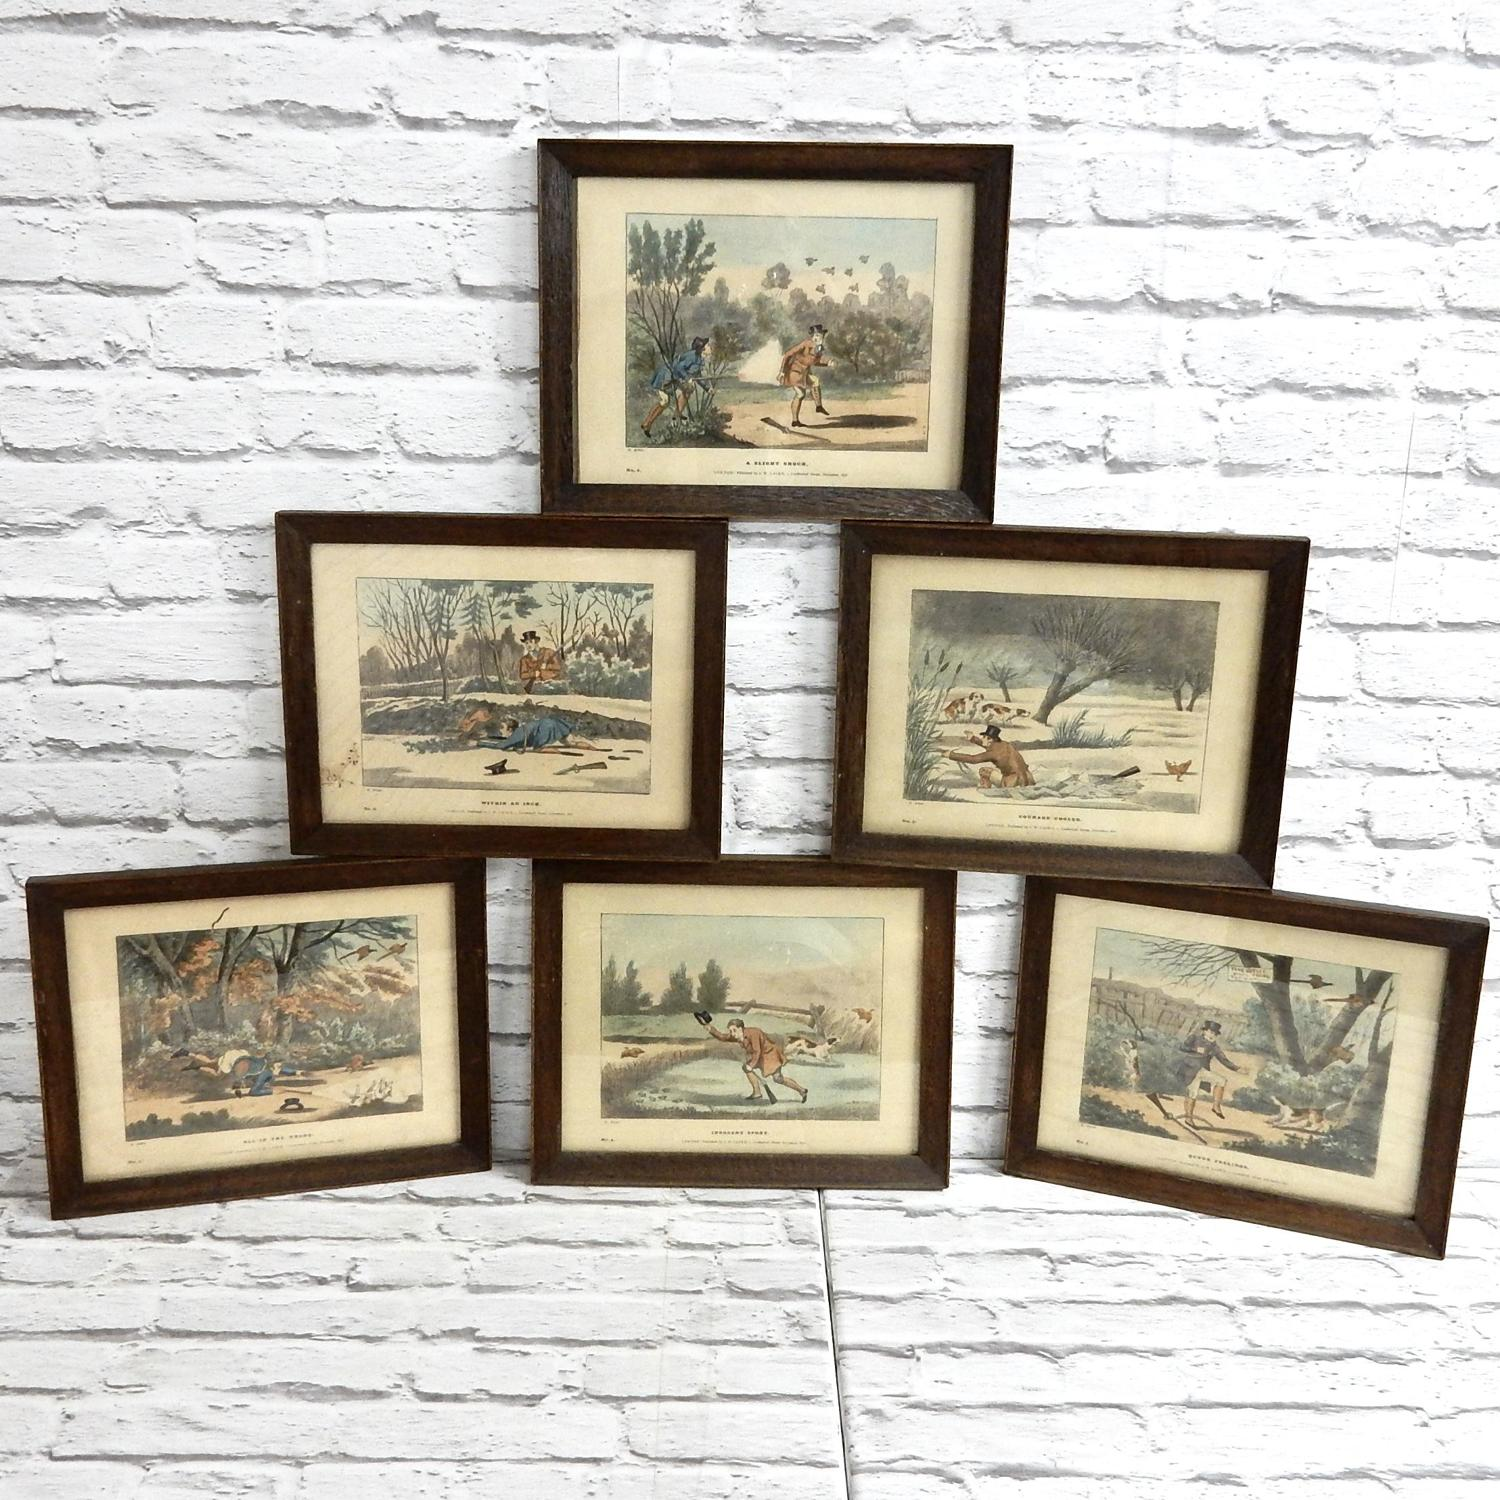 Alken Hunting Prints